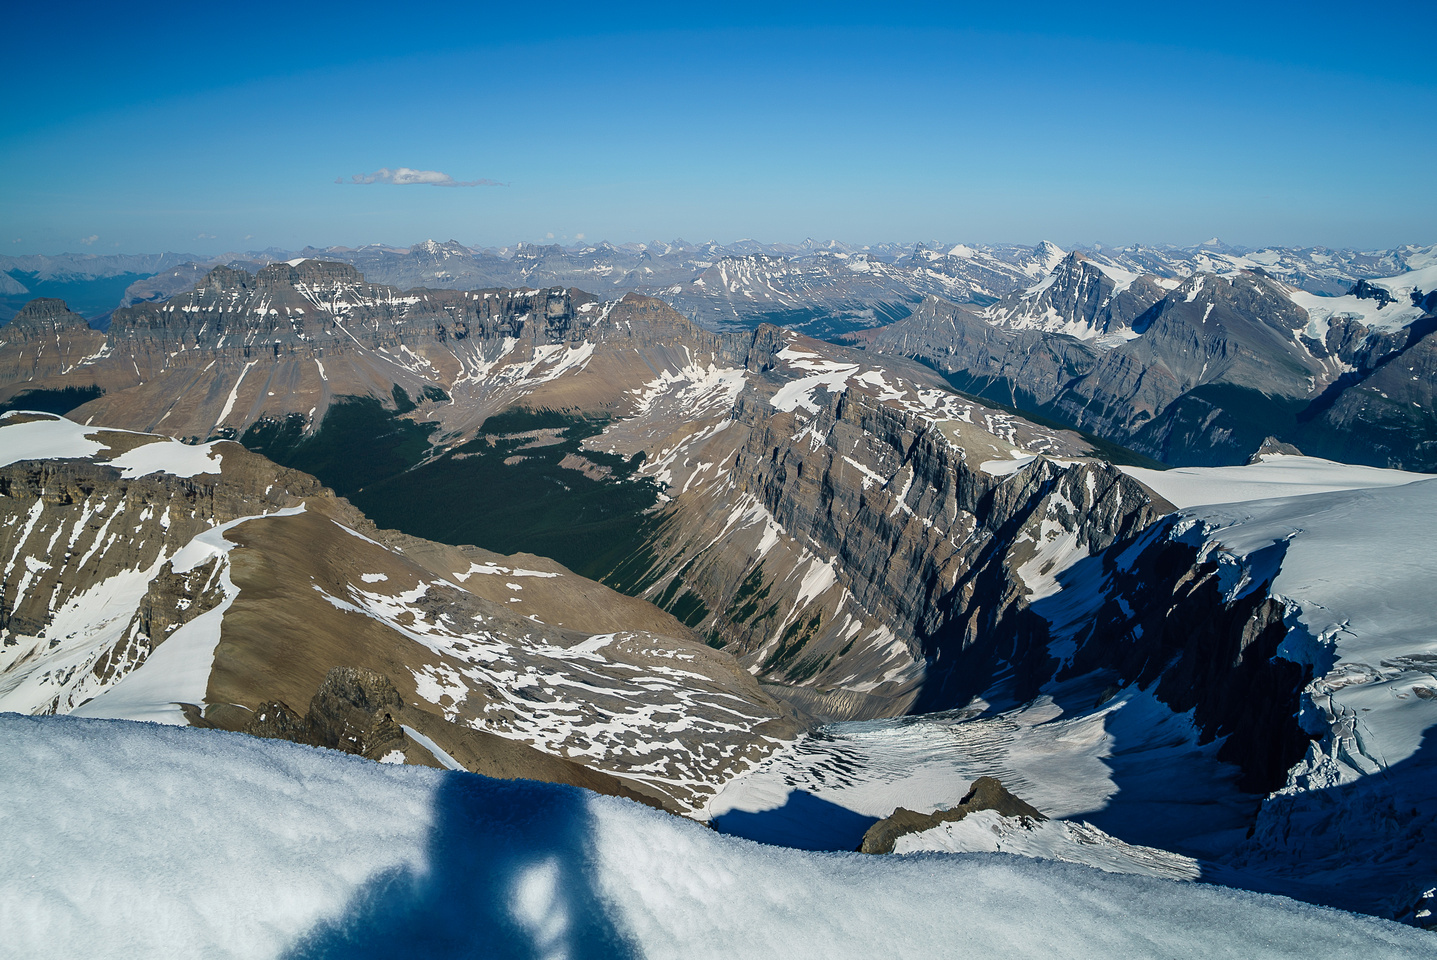 Looking west towards Erasmus, Sullivan and Arctomys with the Glacier Lake valley out of sight at right.